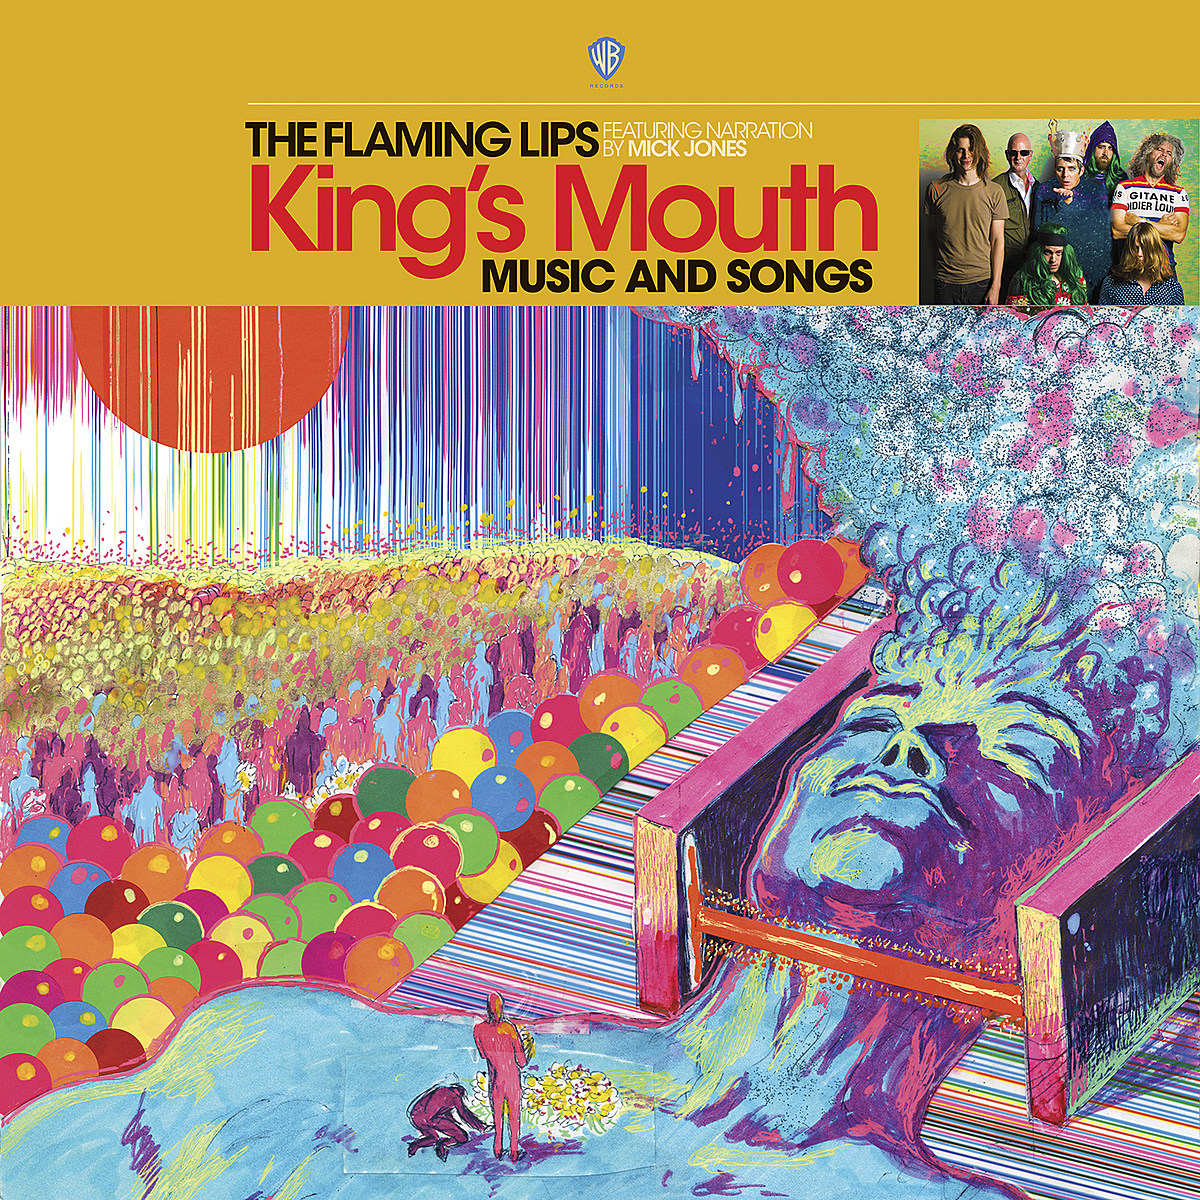 The Flaming Lips - 'Kings Mouth' review